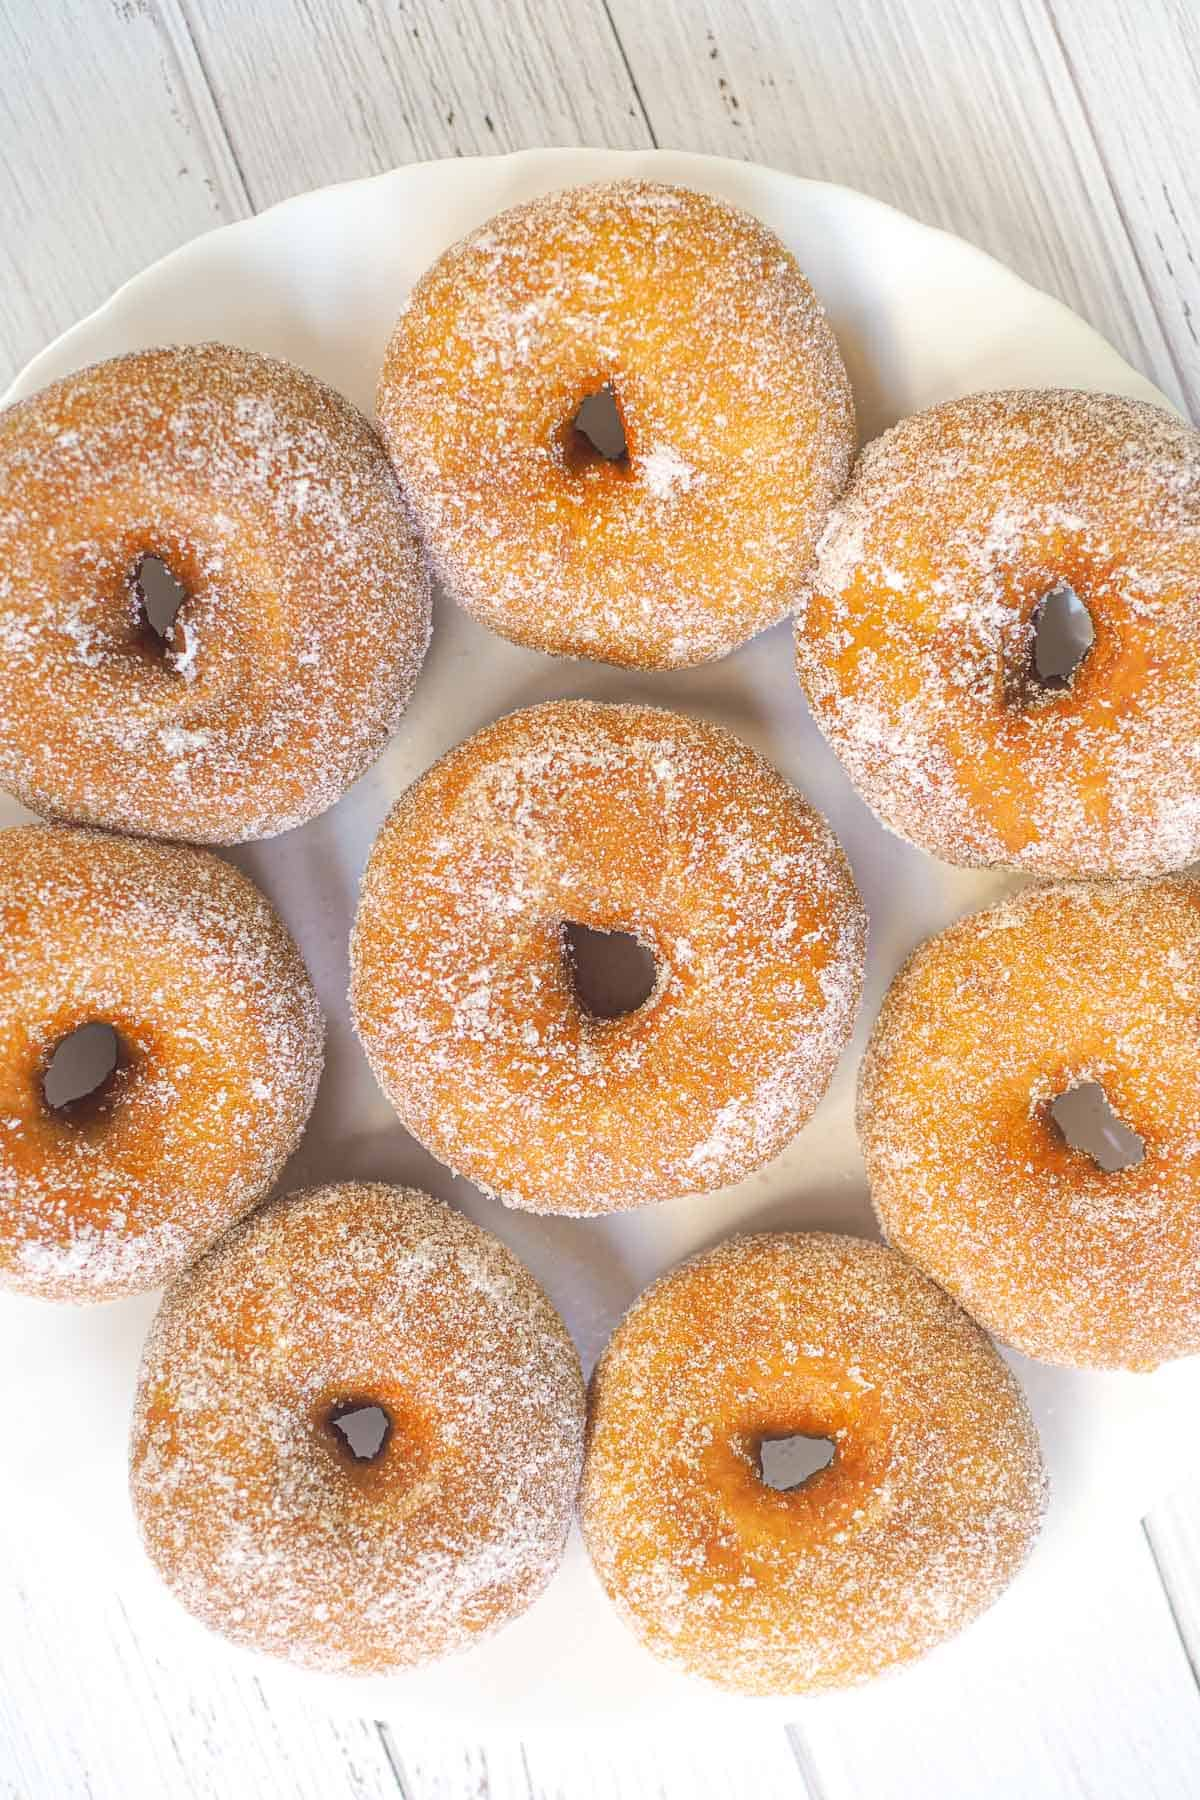 Ring donuts coated in sugar on a plate